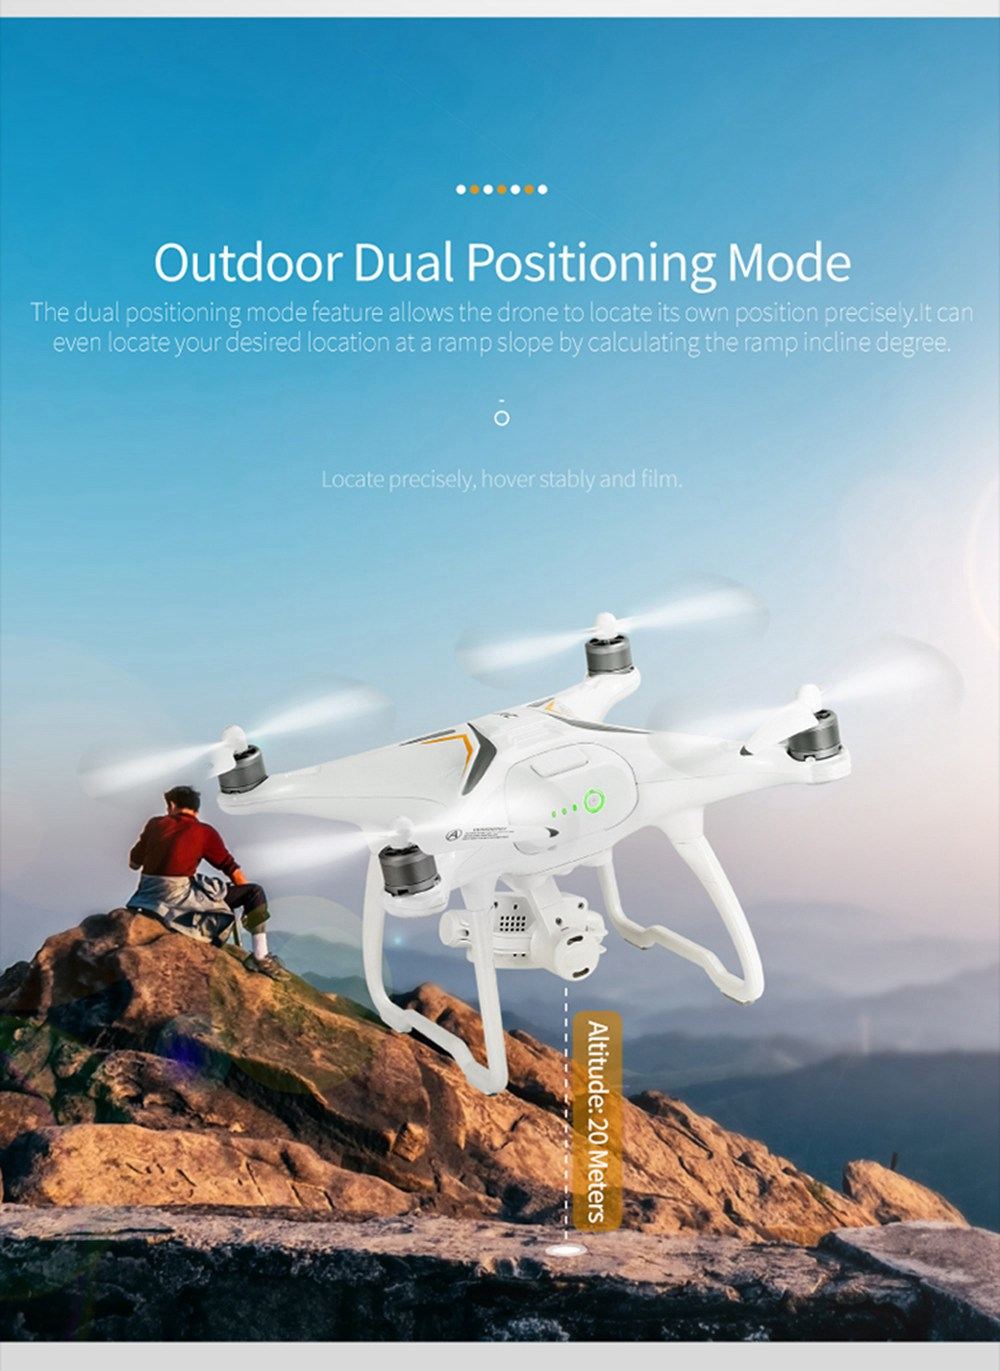 JJRC X6 Aircus 5G WIFI Dual GPS RC Drone With 1080P 2-Axis Self-stabilizing Gimbal Follow Me Mode RTF - Two Batteries